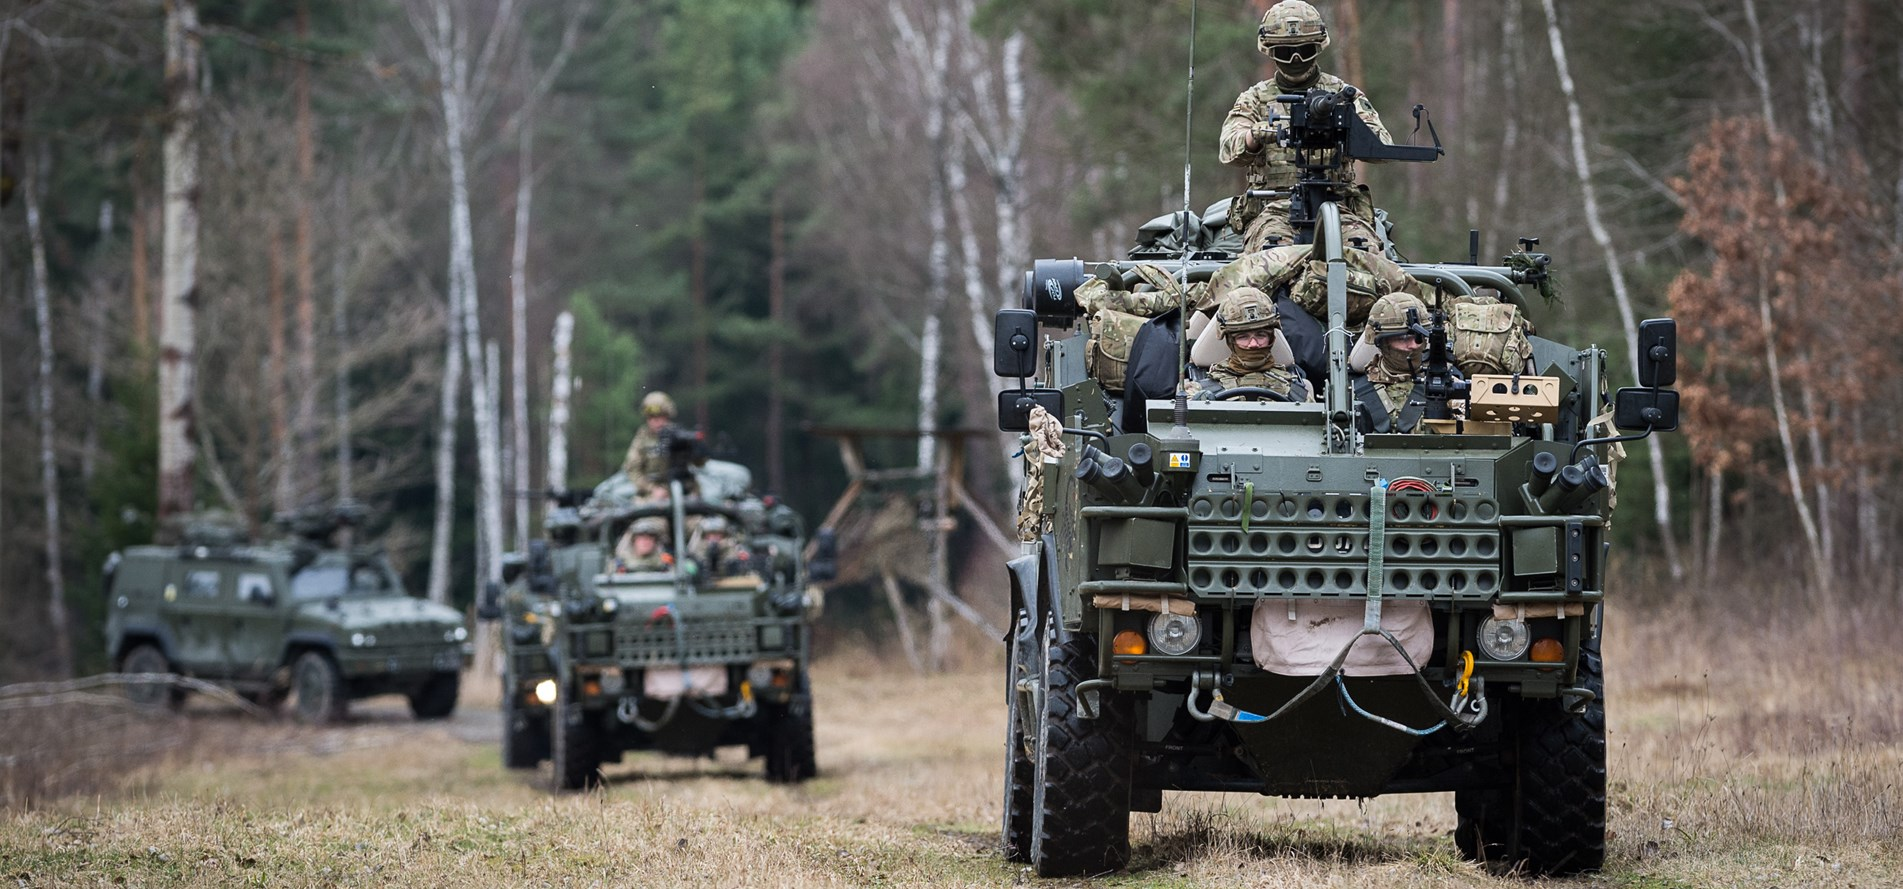 APOG-2017-032-eFP_Poland_Light_Dragoons-0121.jpg